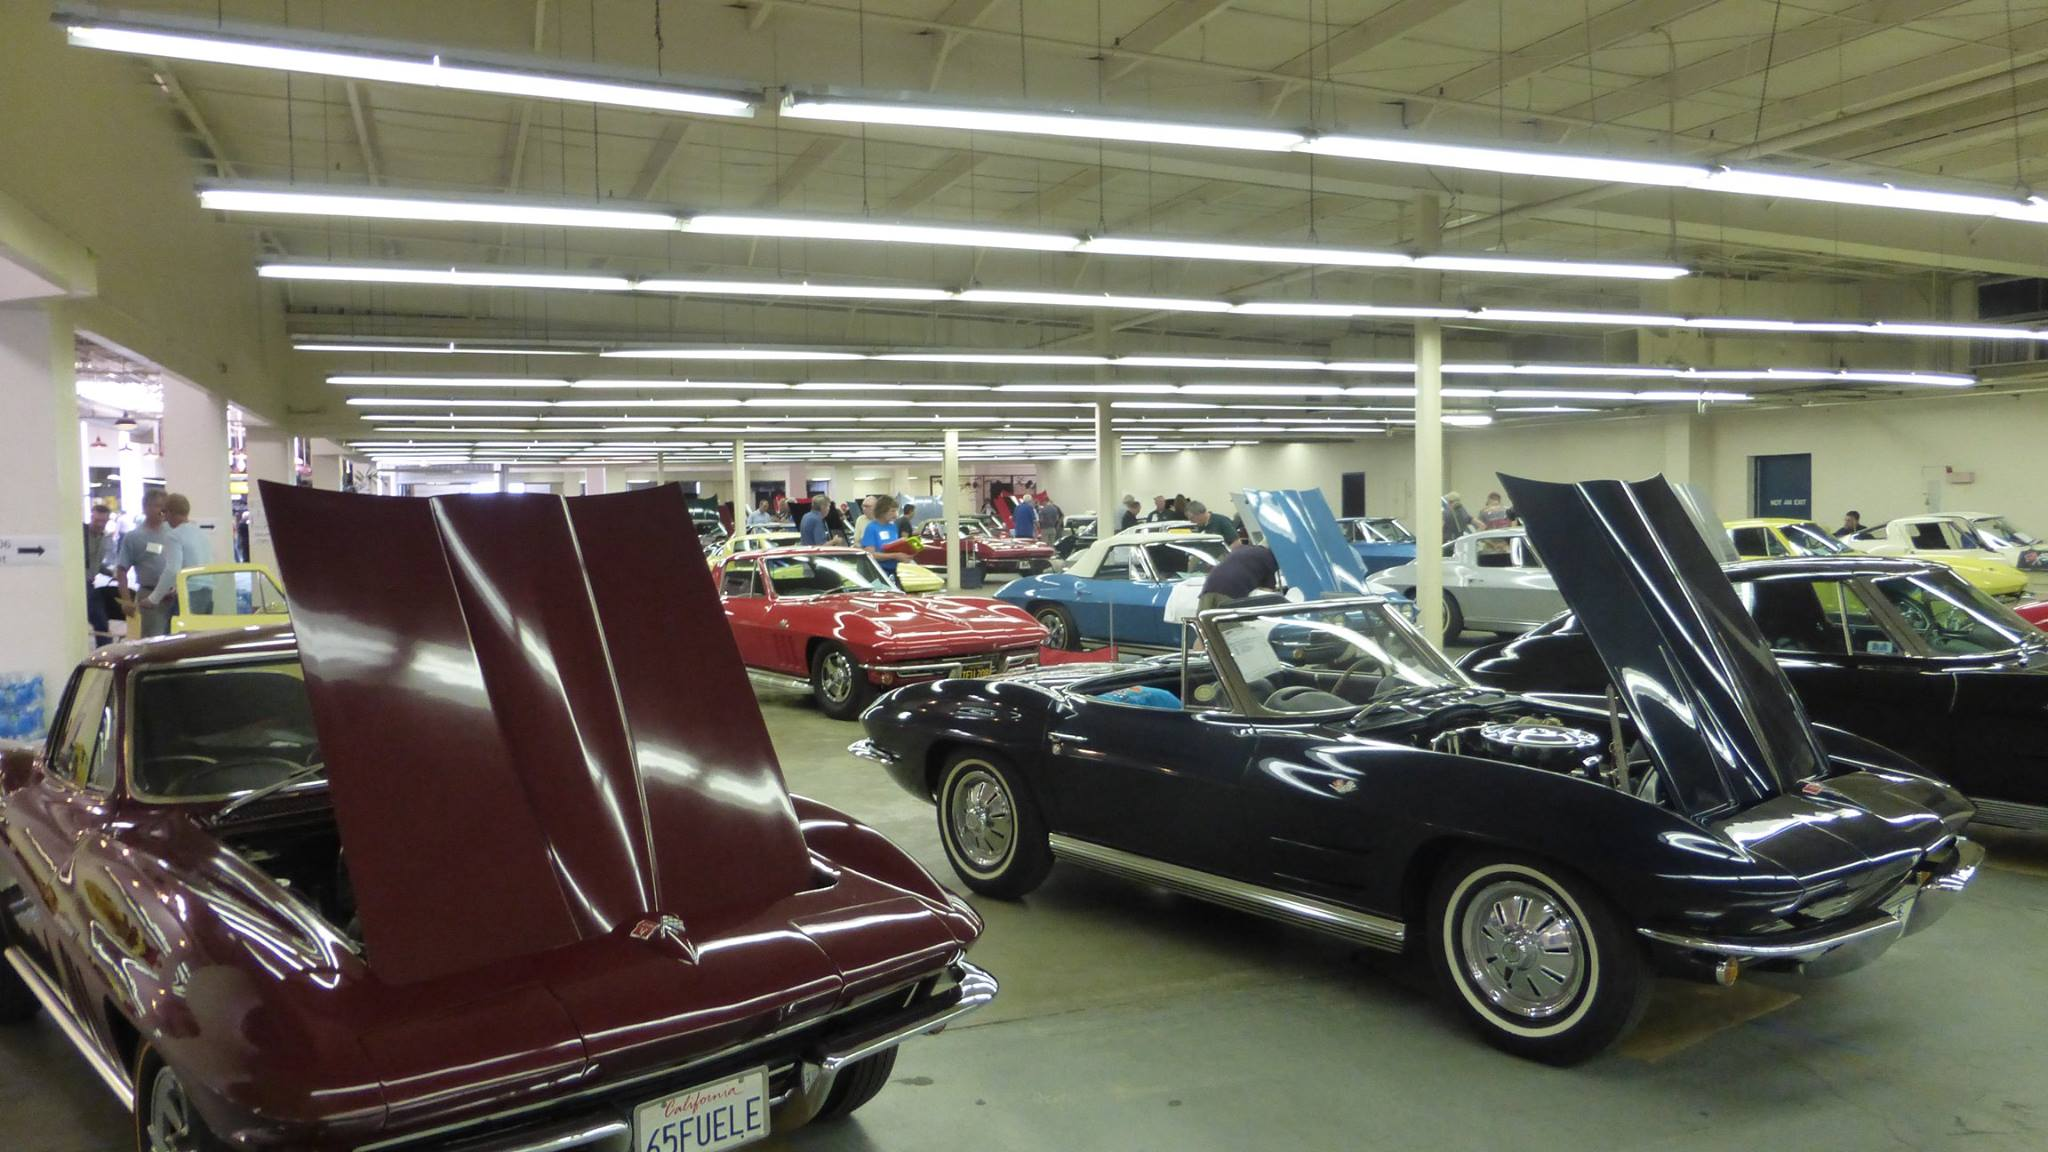 Trade Show And Expo Venue Rental In Tucson Tucson Expo Center - Car show tucson today